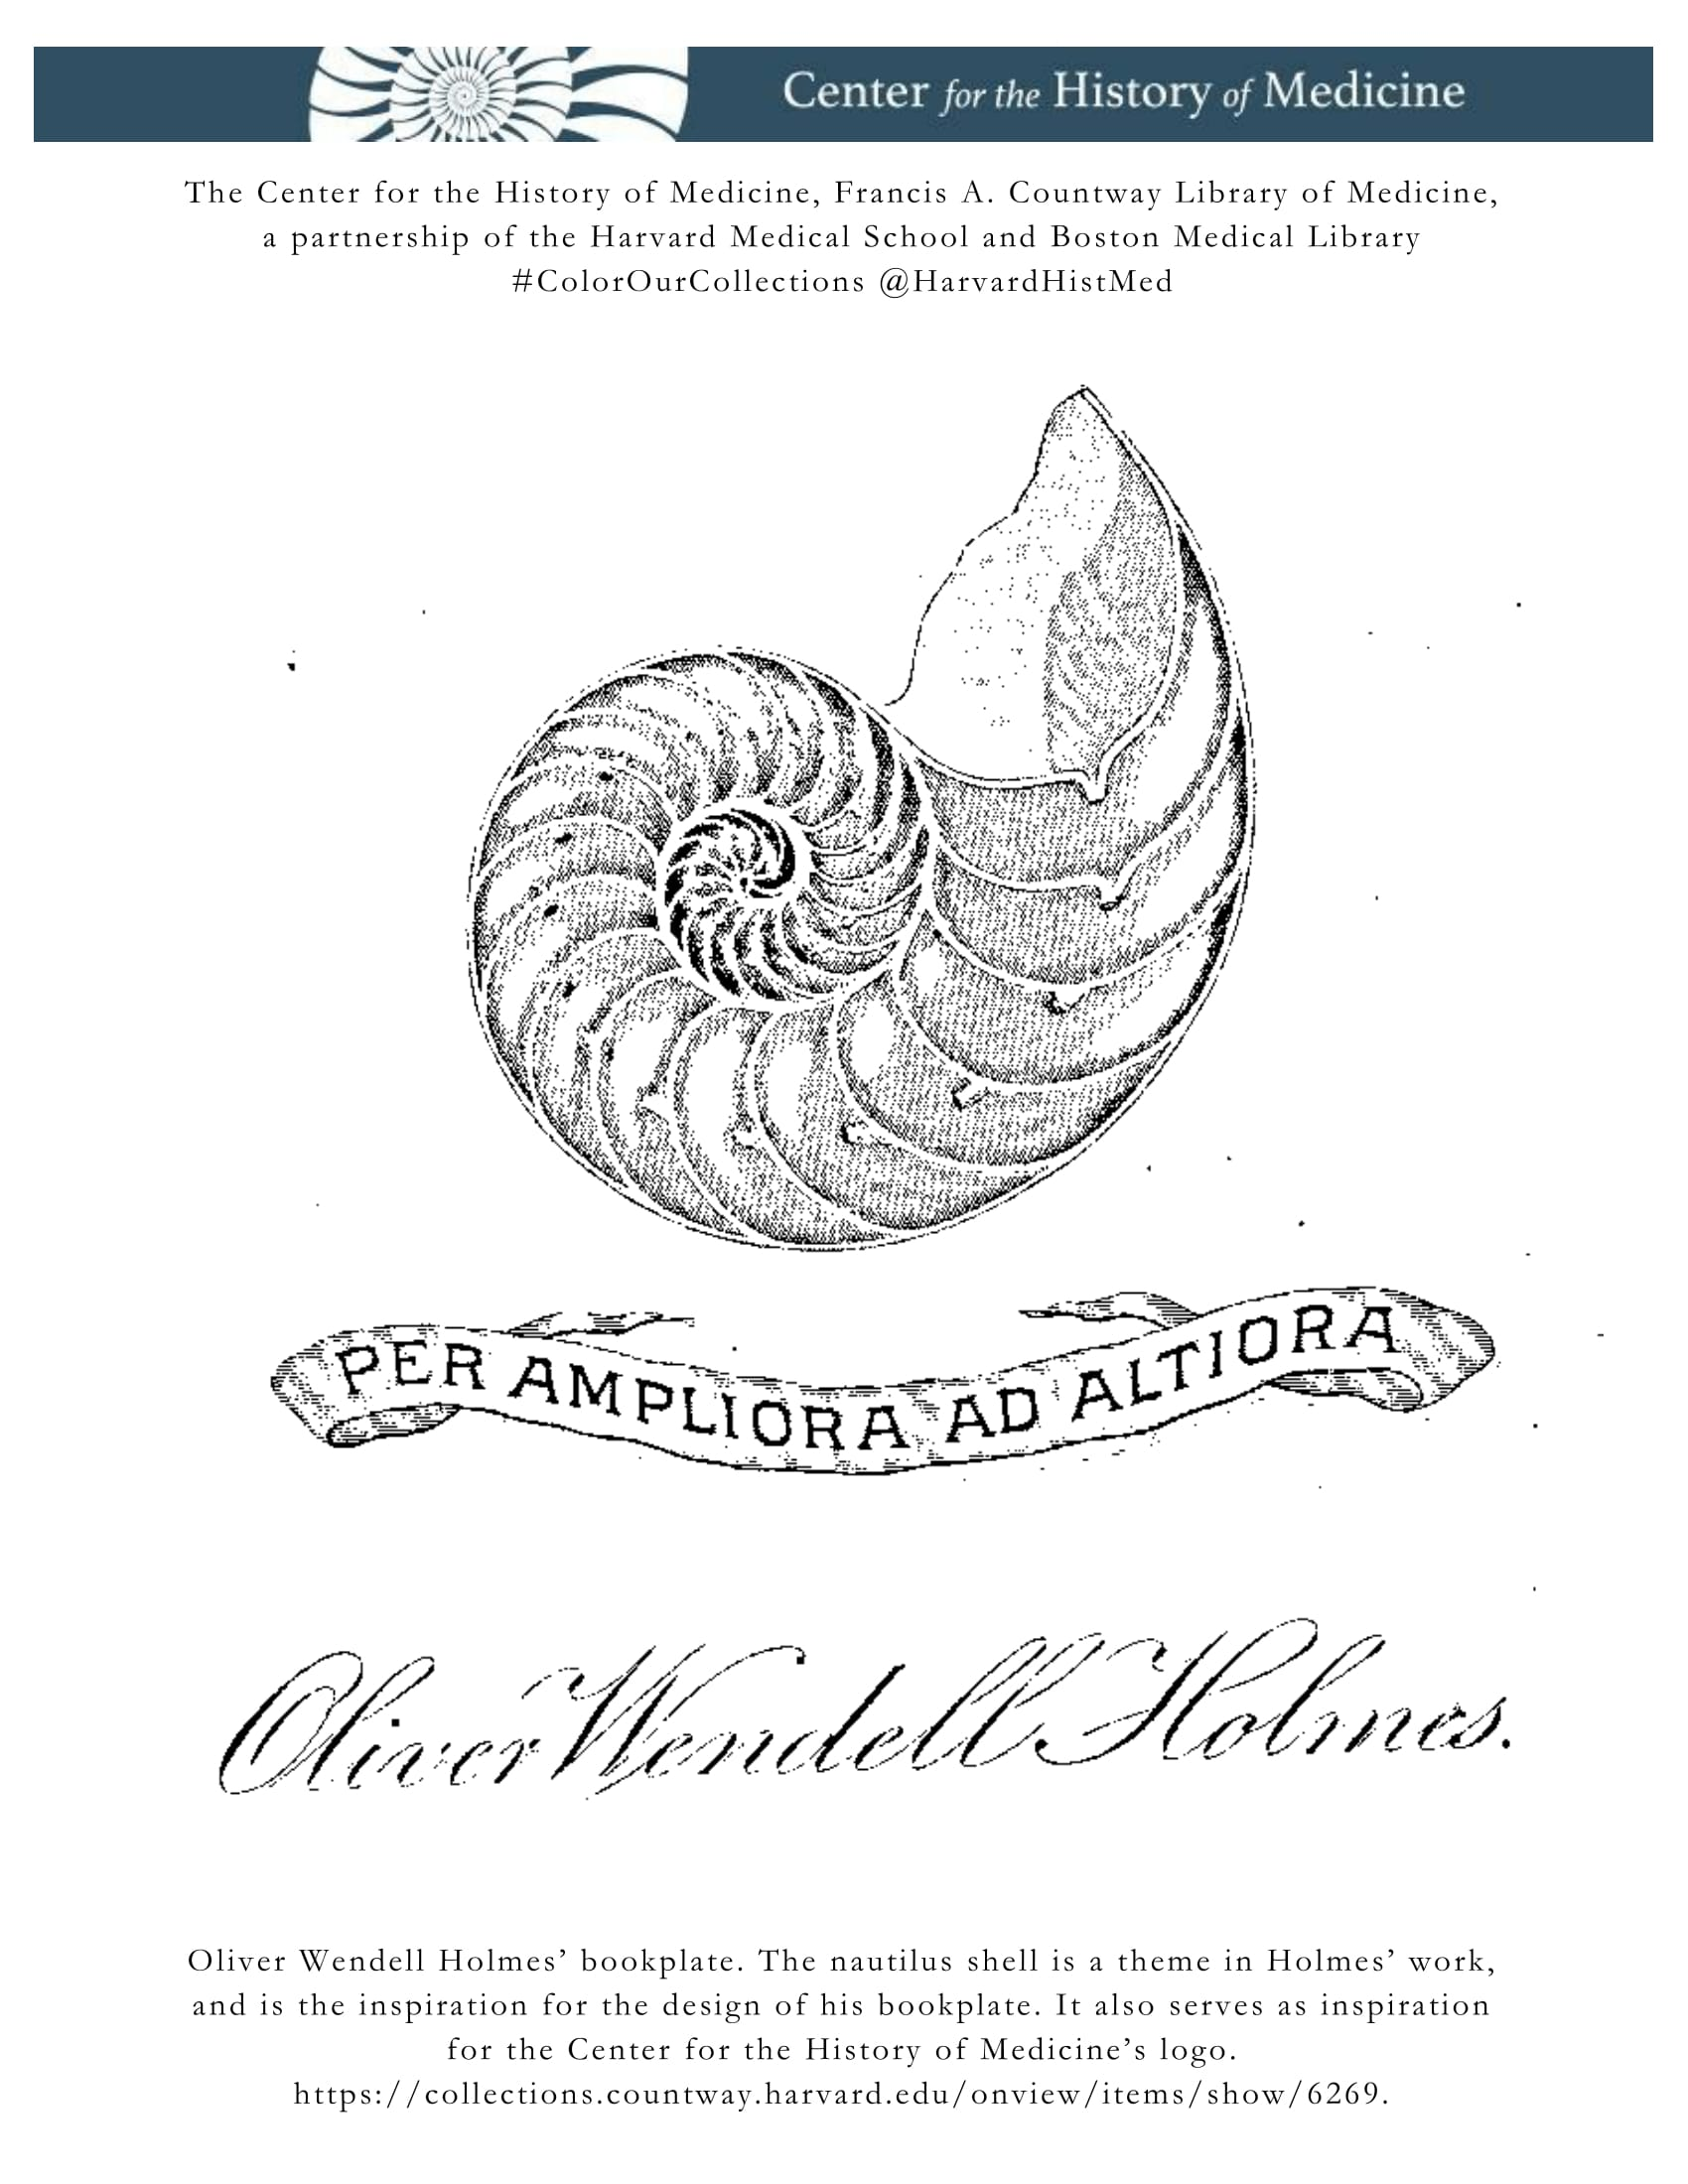 oliver wendell holmes bookplate the nautilus shell is a theme in holmes work